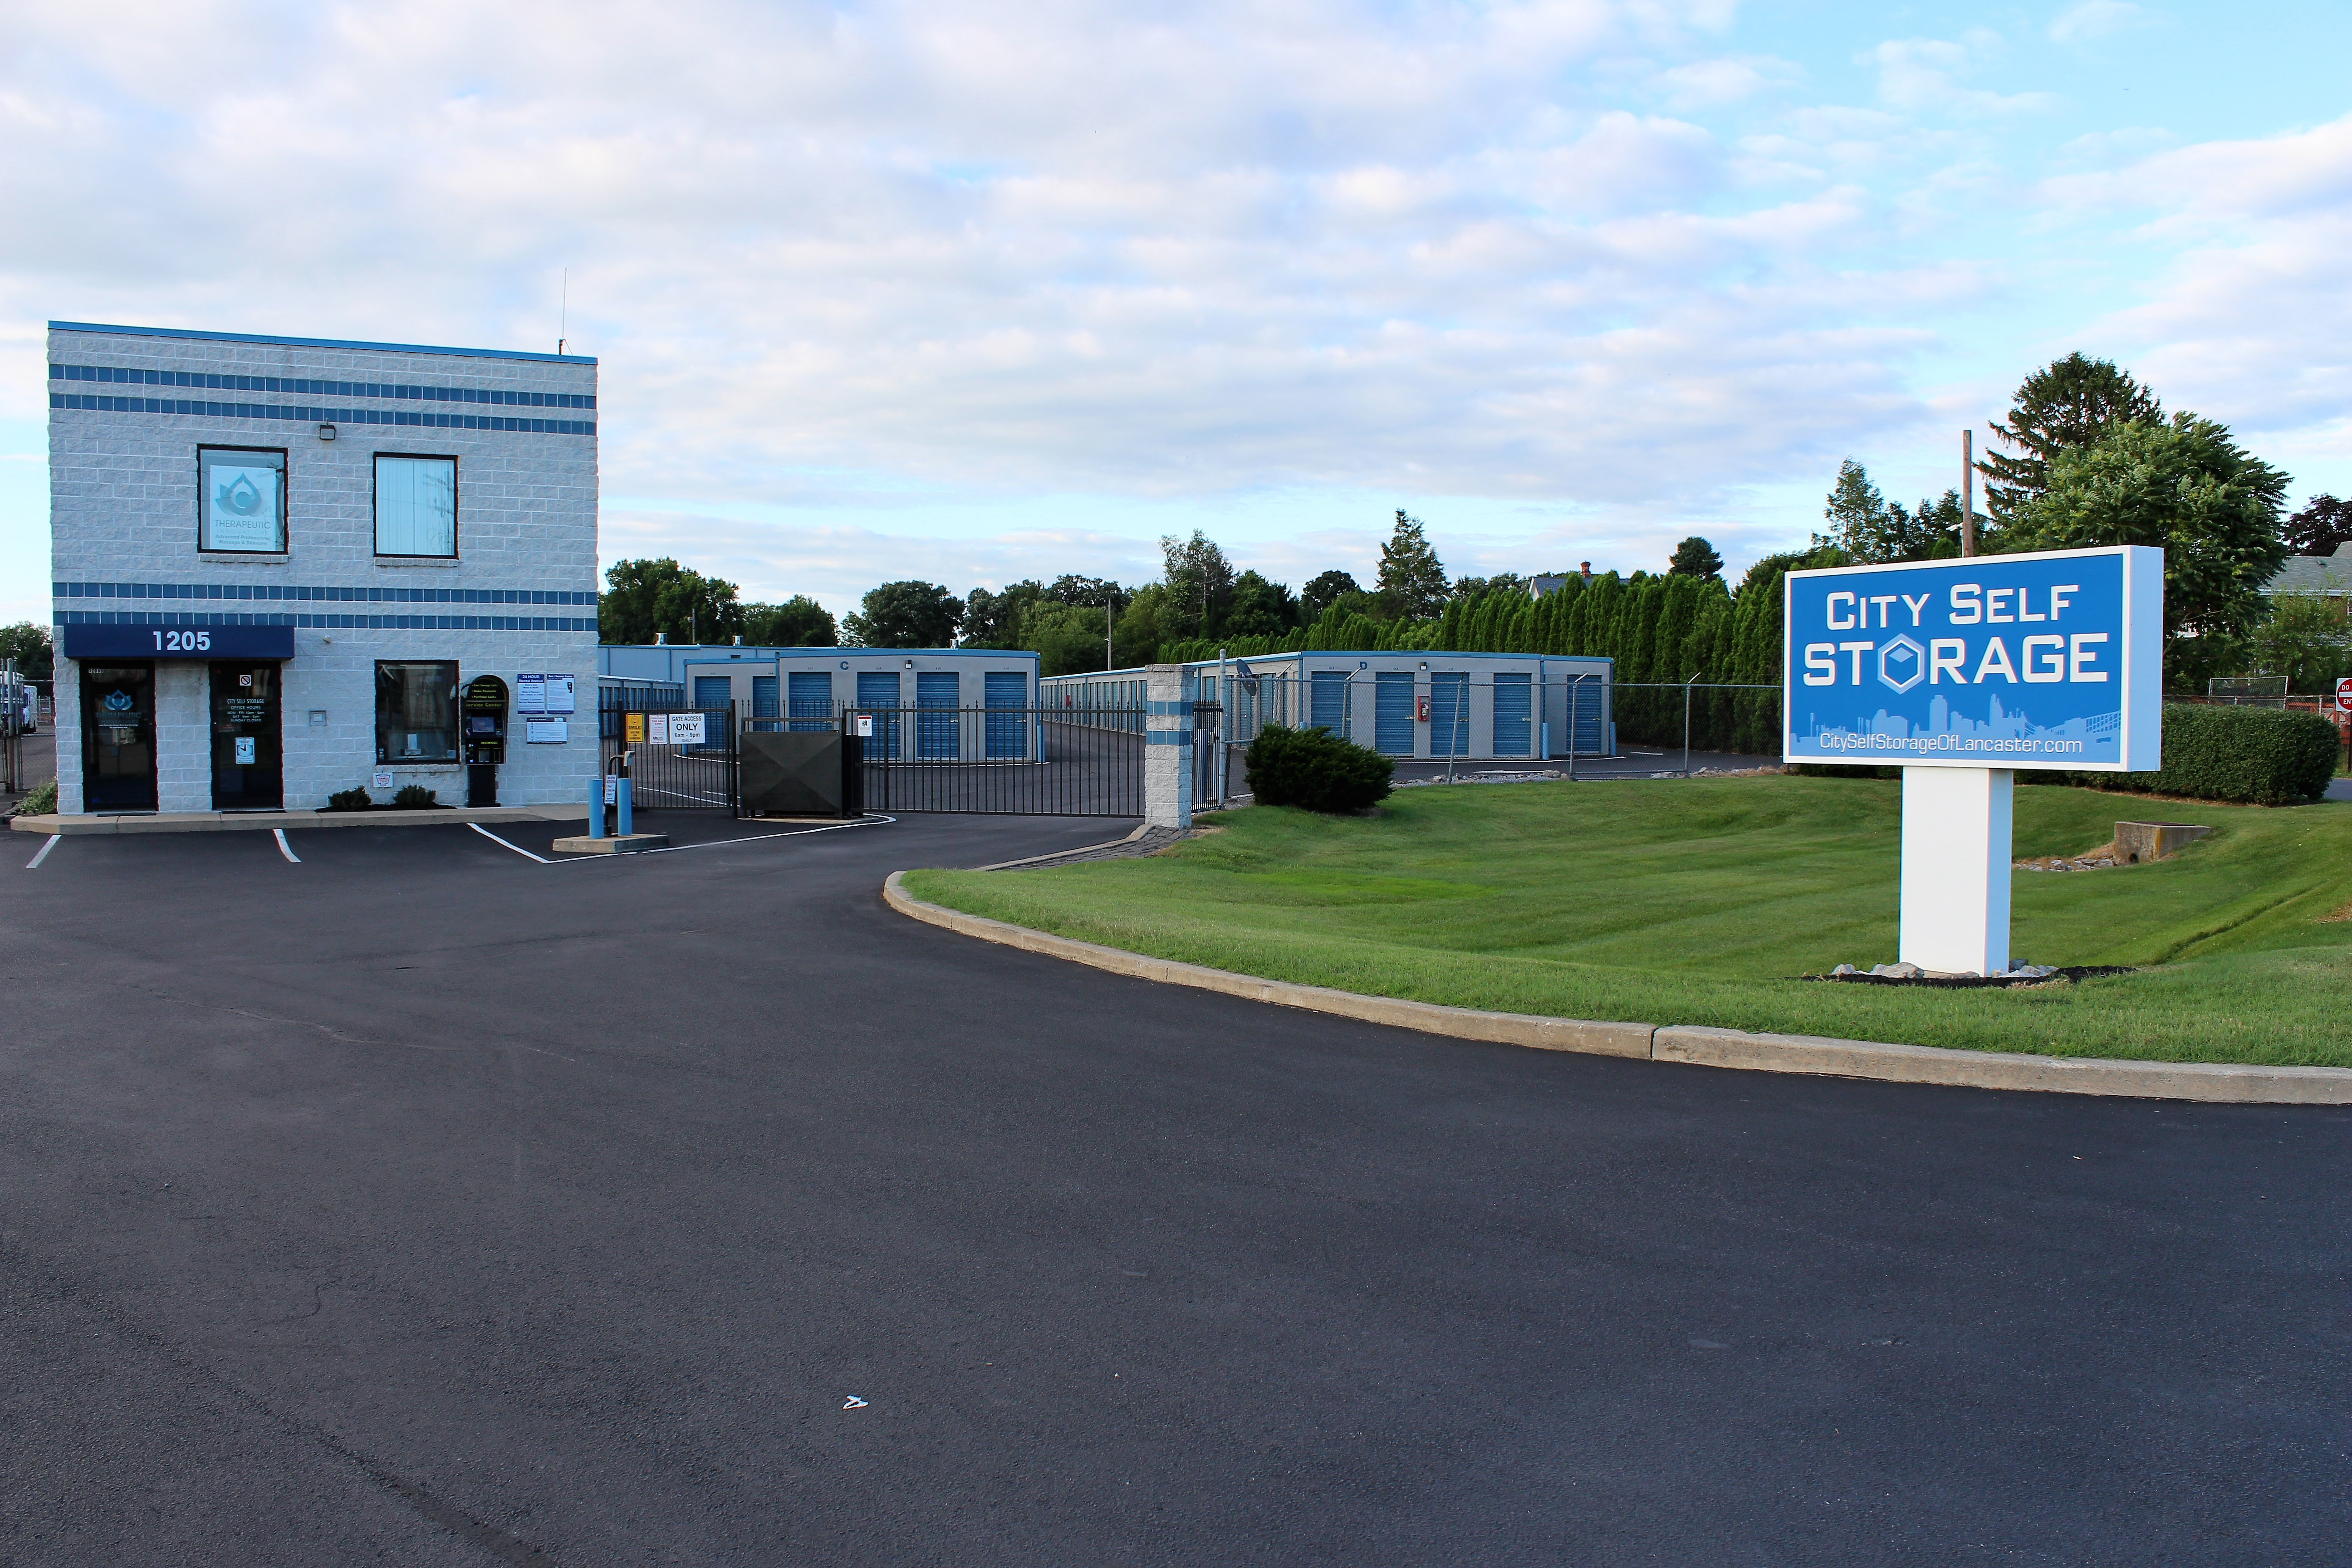 City Self Storage in Lancaster, PA